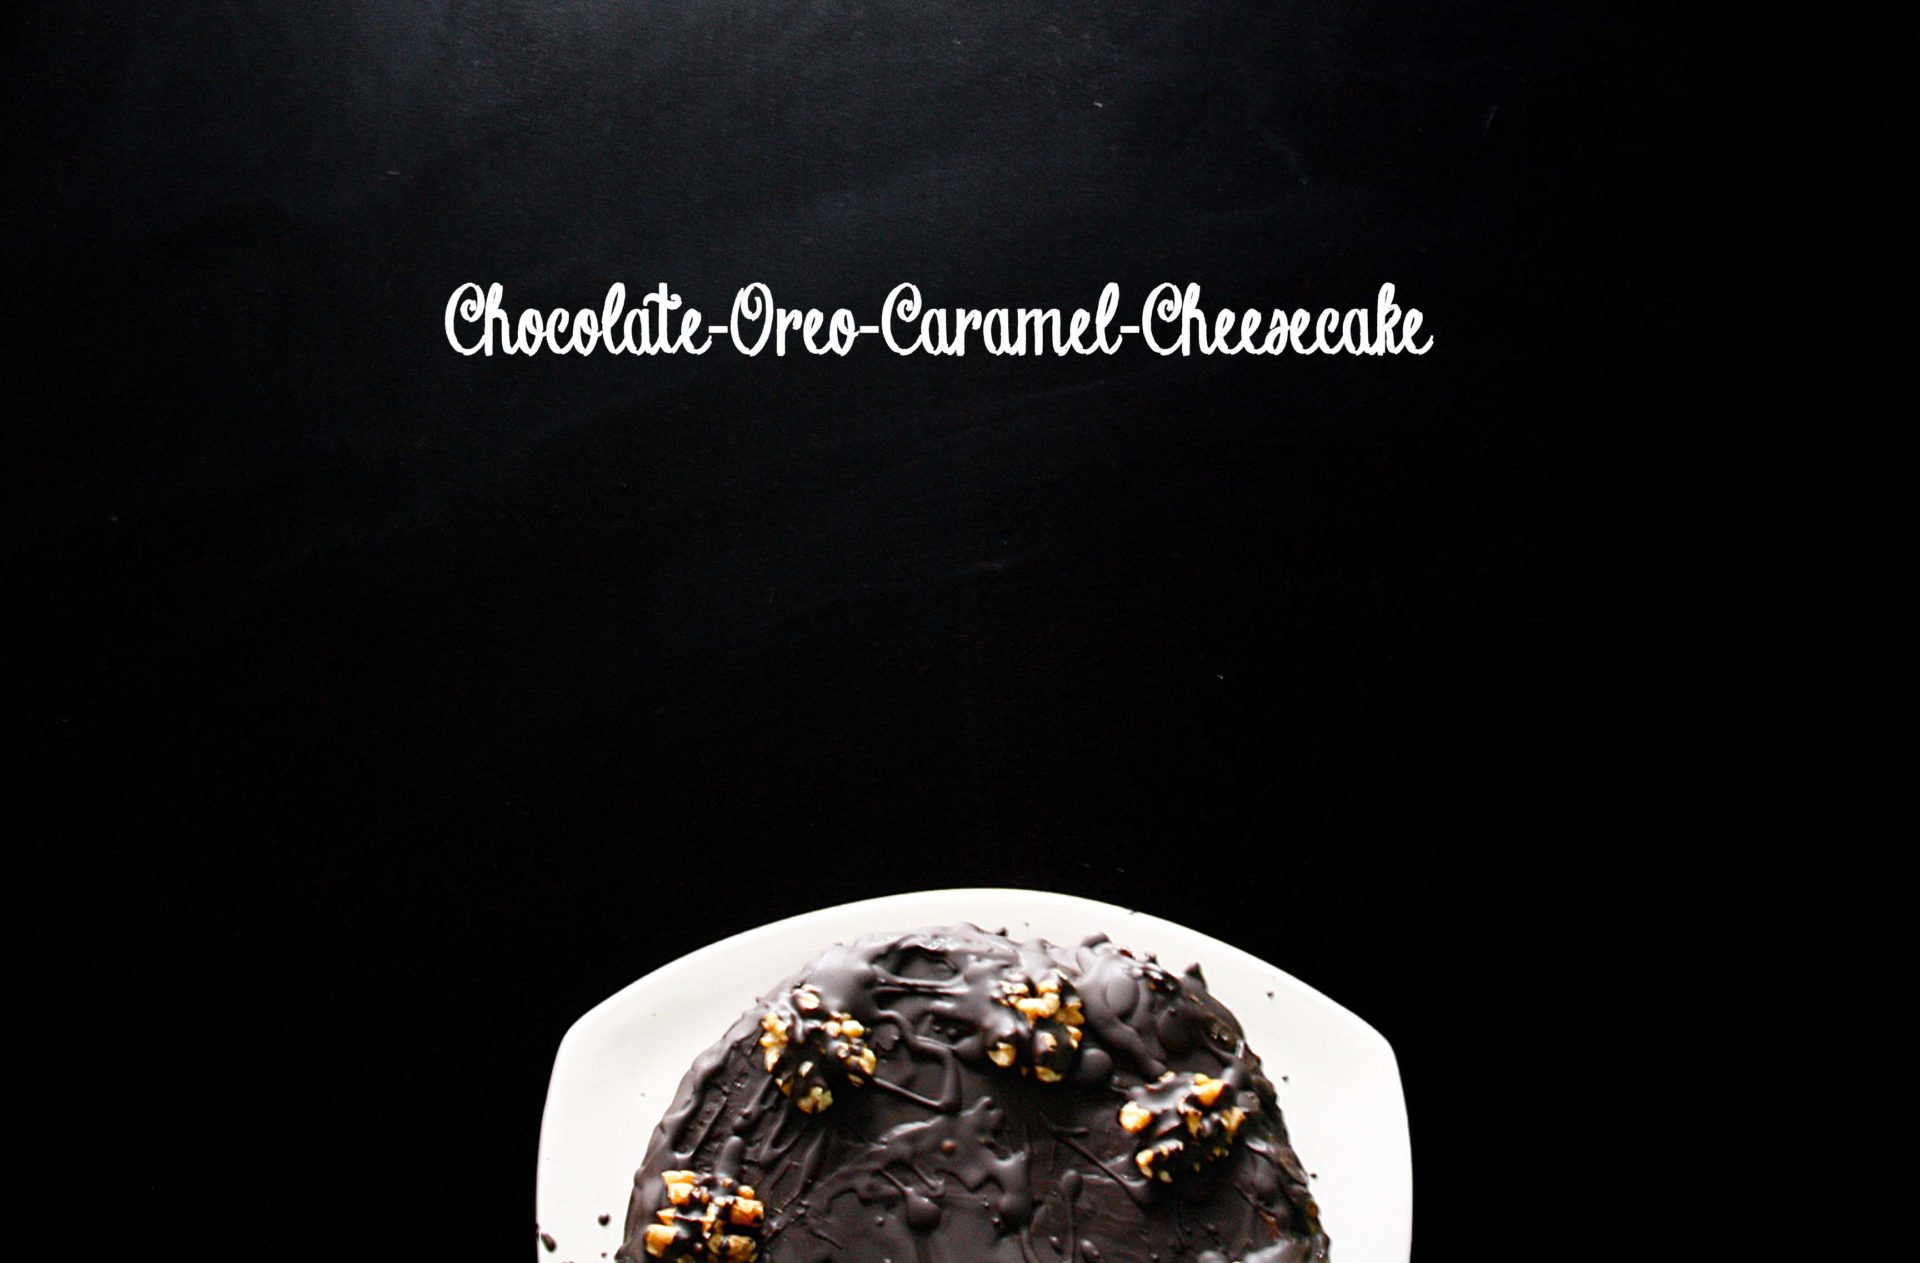 Chocolate-Caramel-Oreo-Cheesecake by http://babyrockmyday.com/chocolate-caramel-oreo-cheesecake/